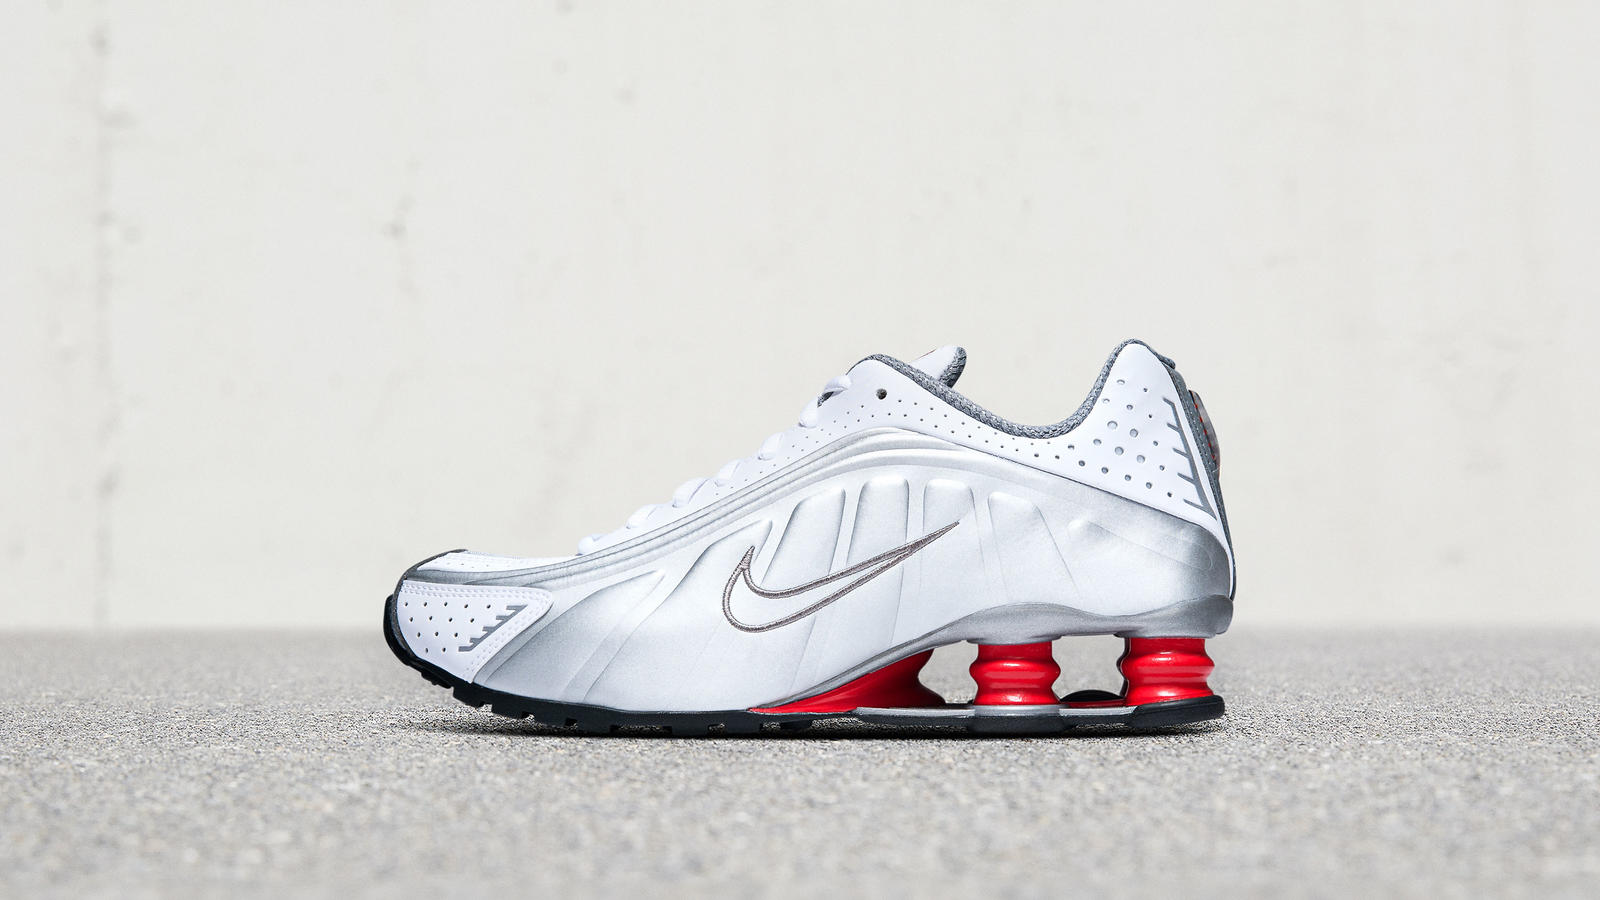 How to Get the Nike Shox R4 0